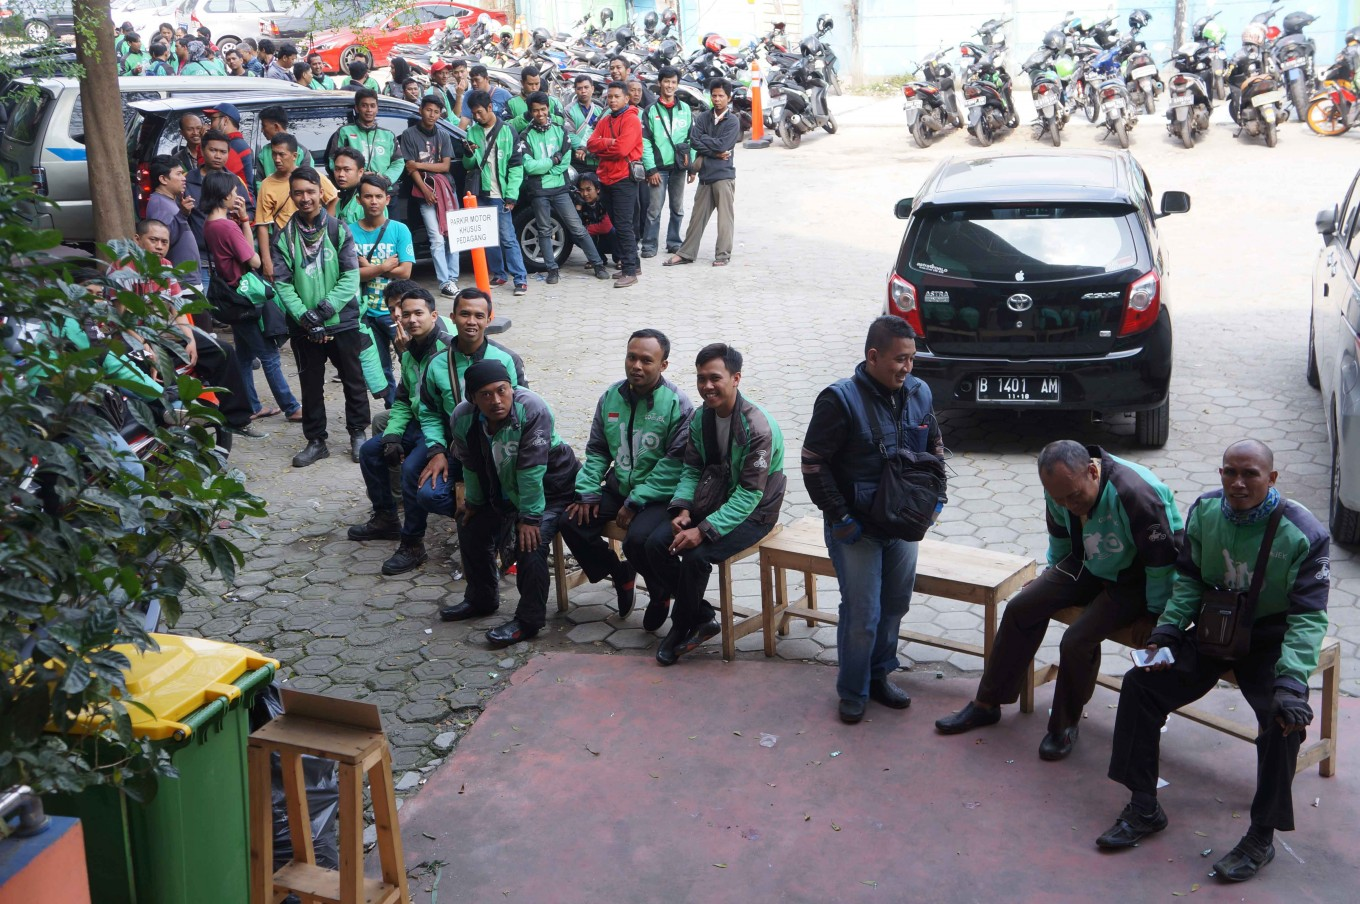 Local coffee shop more popular after Jokowi's visit